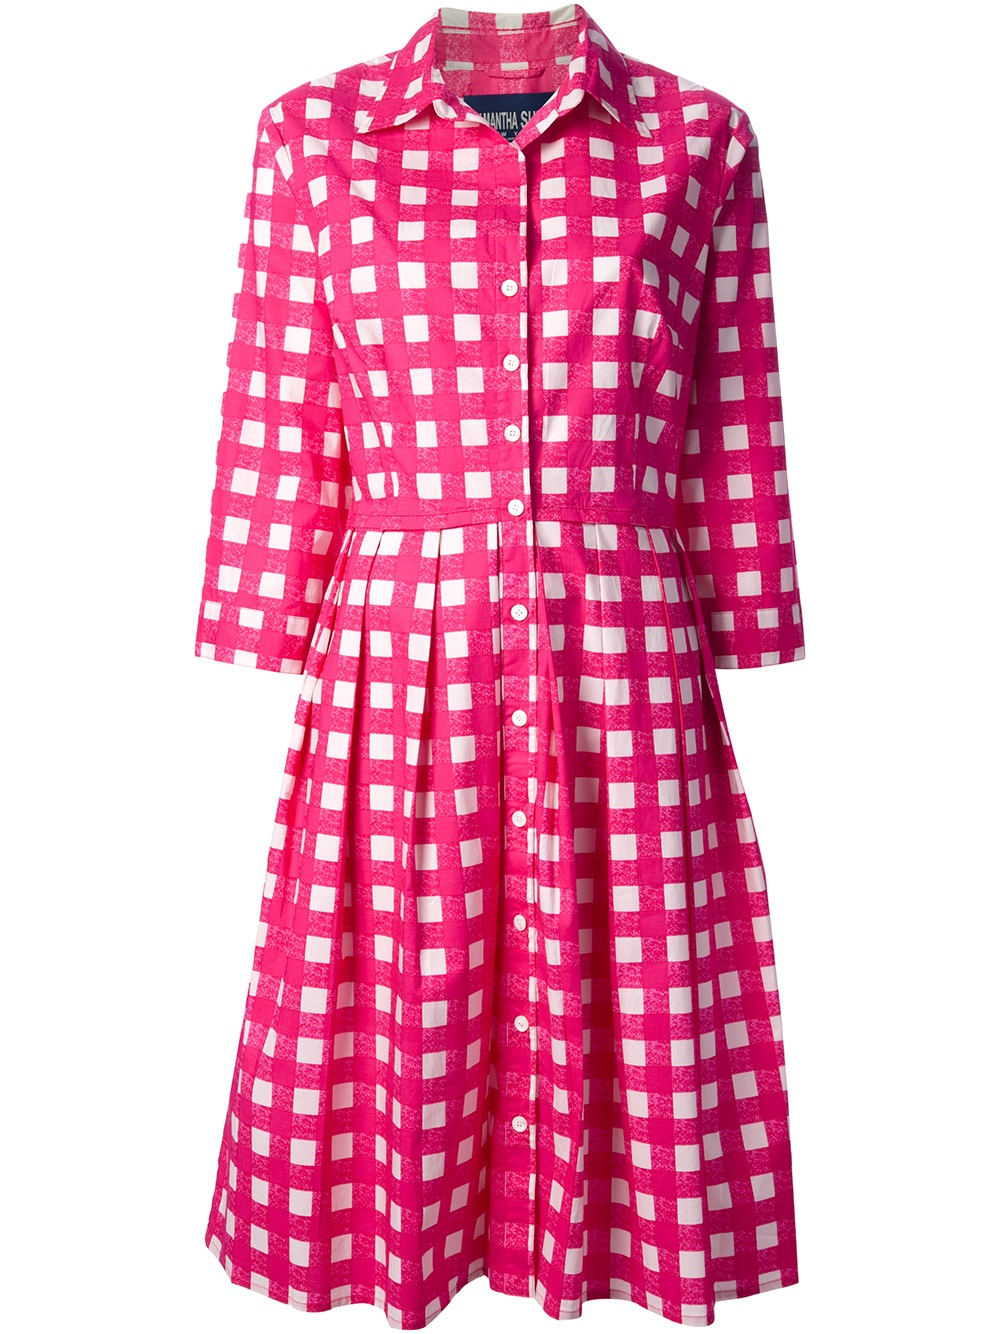 Lyst Samantha Sung Audrey Table Dress In Pink